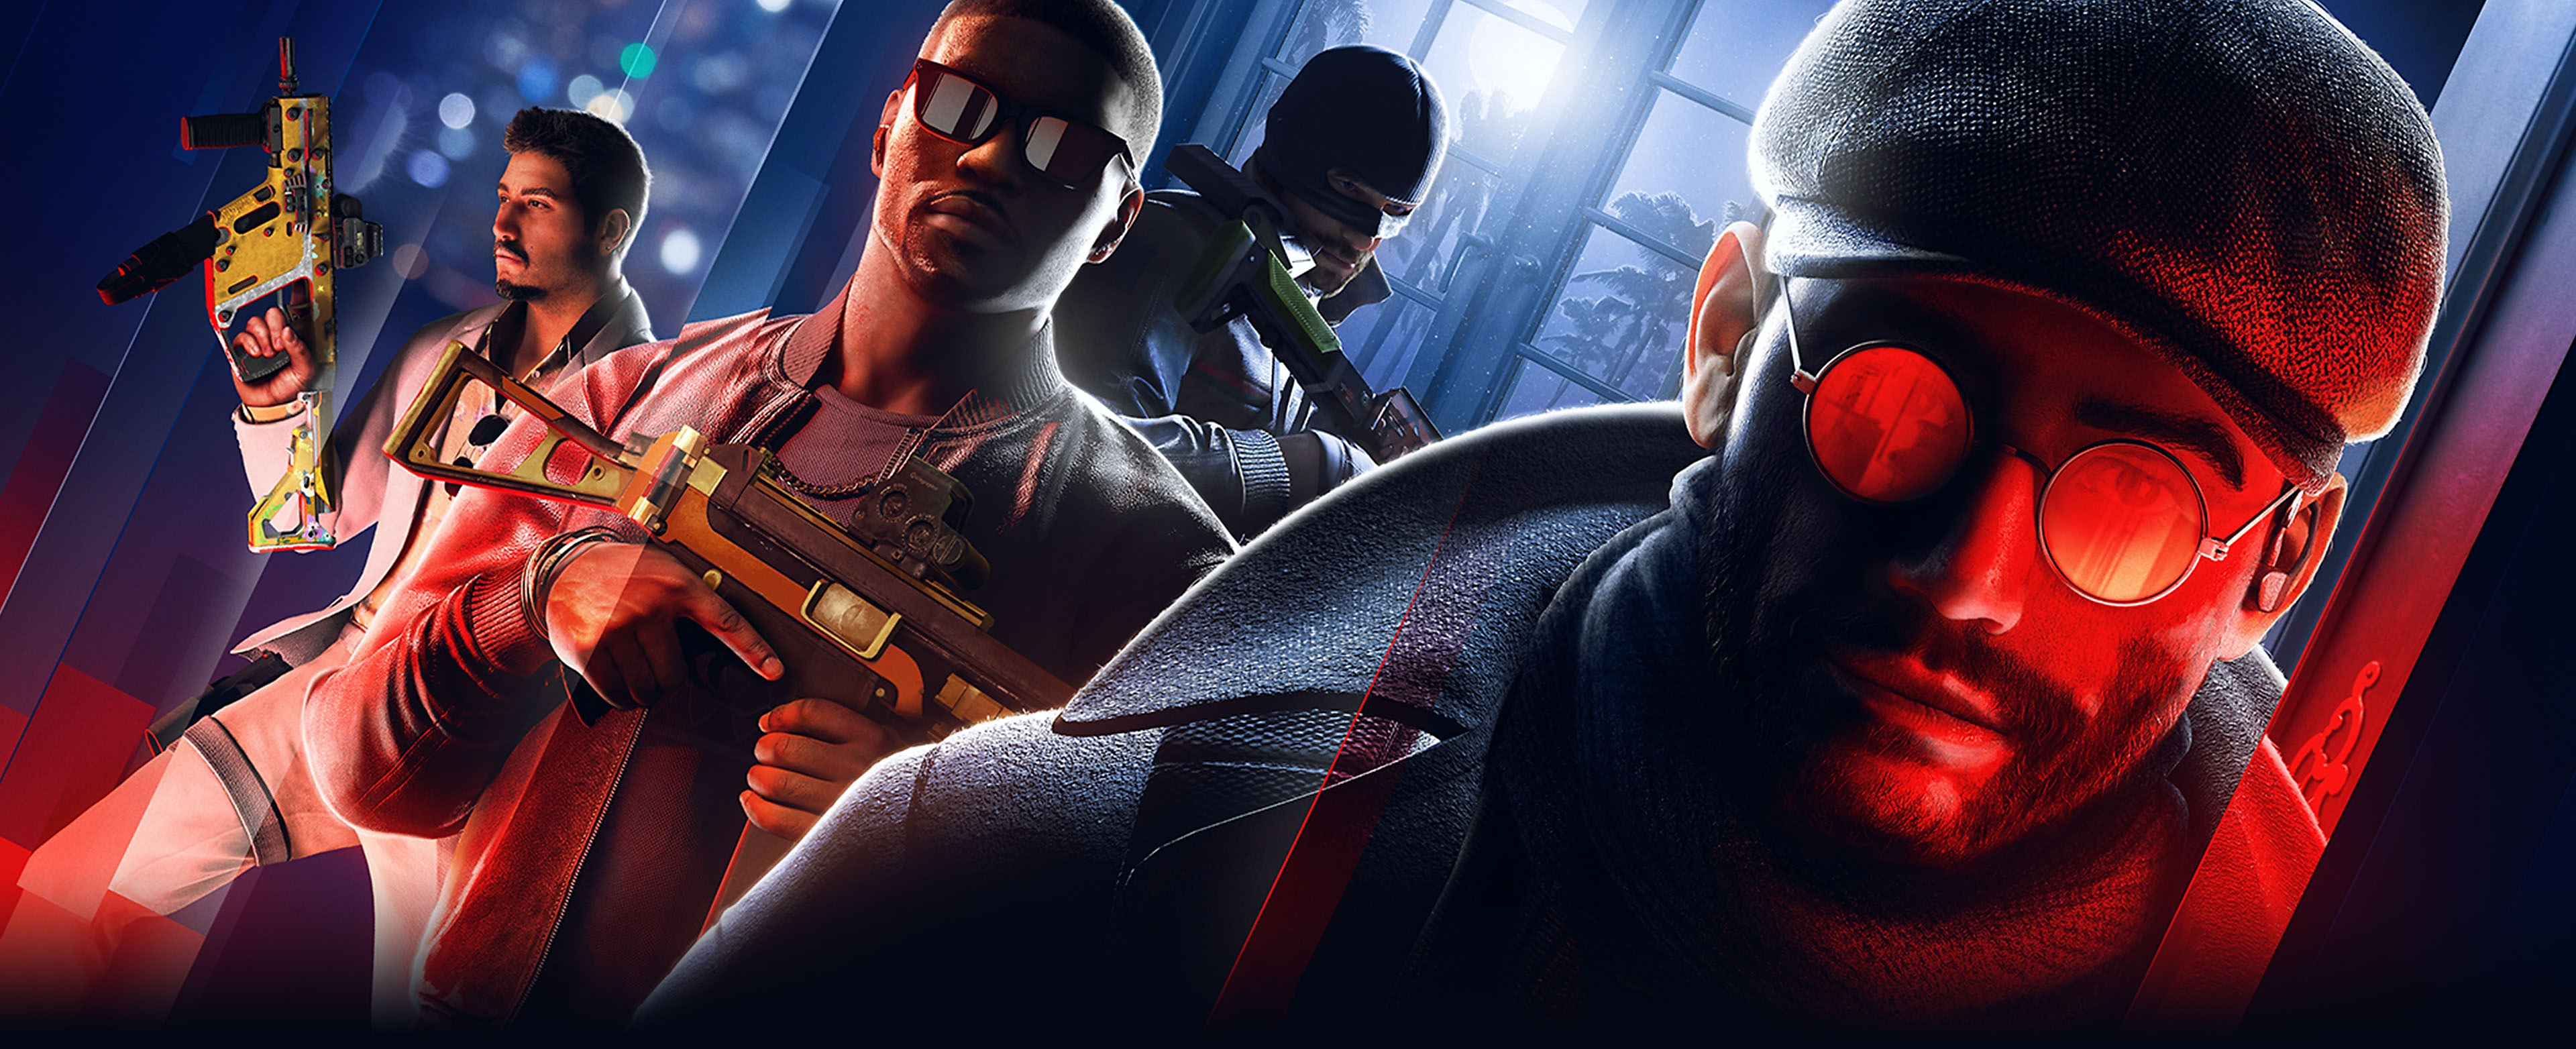 Rainbow Six Siege – Operation Shadow Legacy, glavna ilustracija